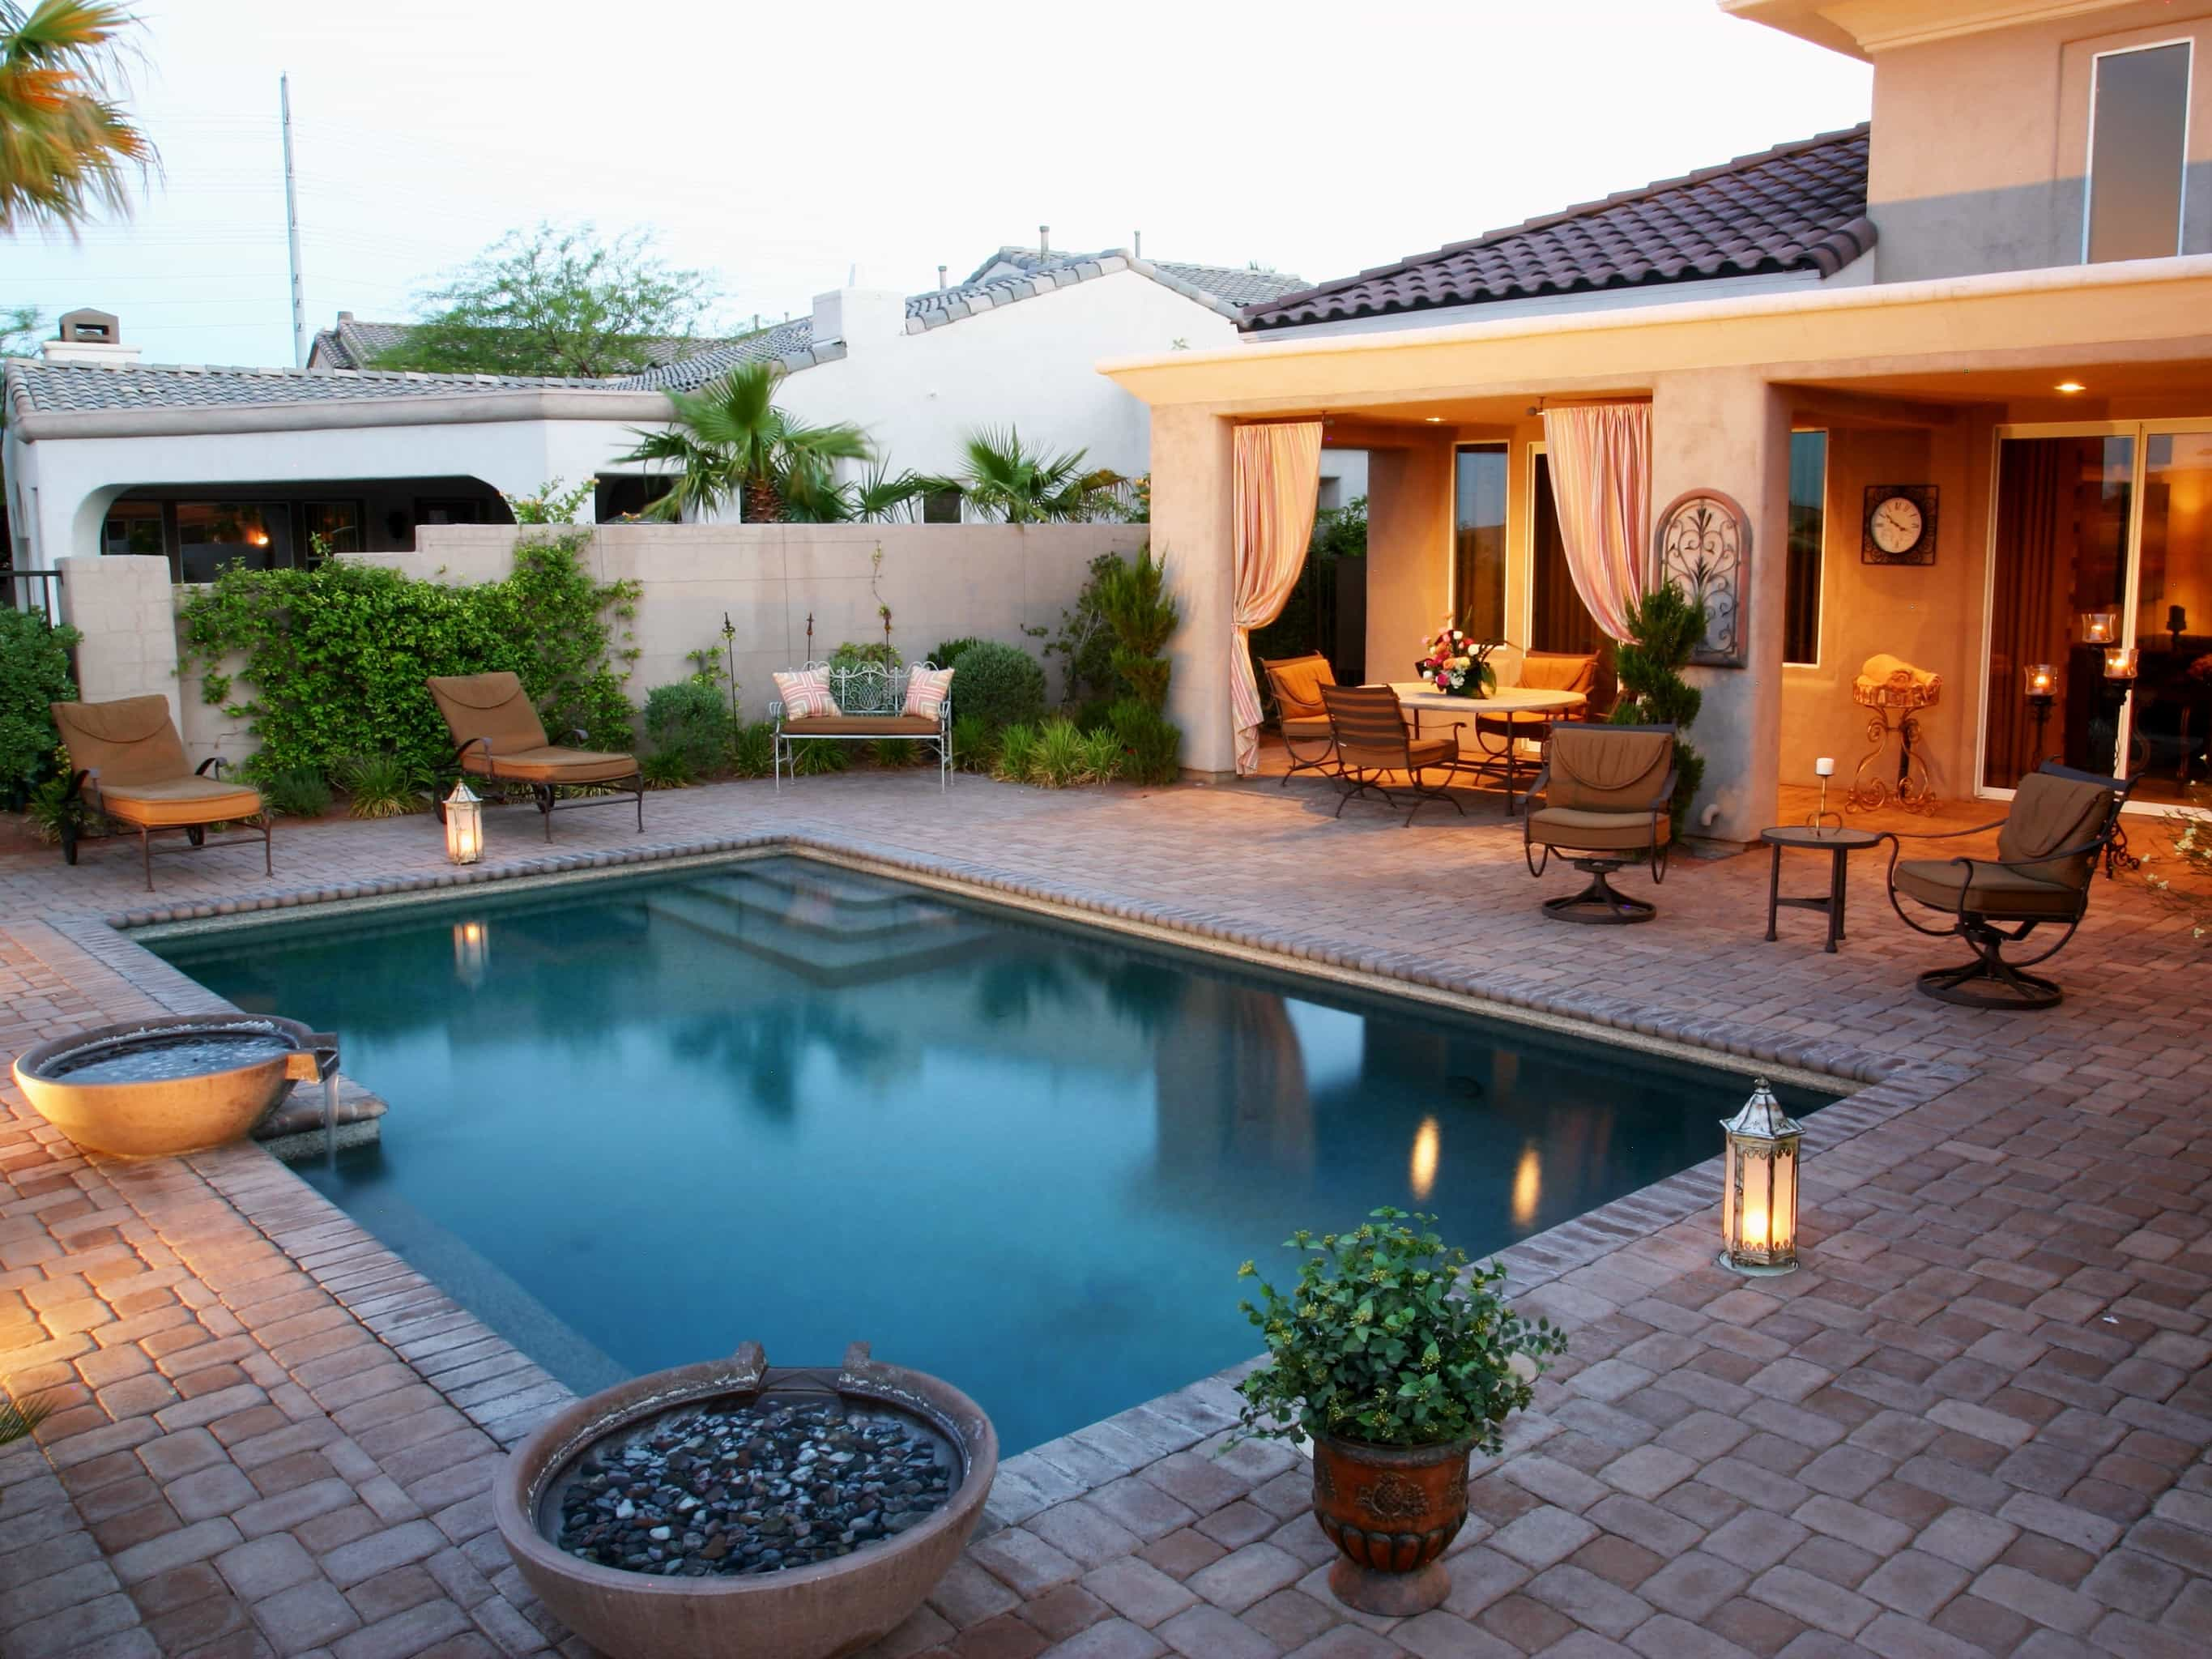 Swimming Pool Designs And Plans #23479   Garden Ideas on Pool Patio Design id=36426